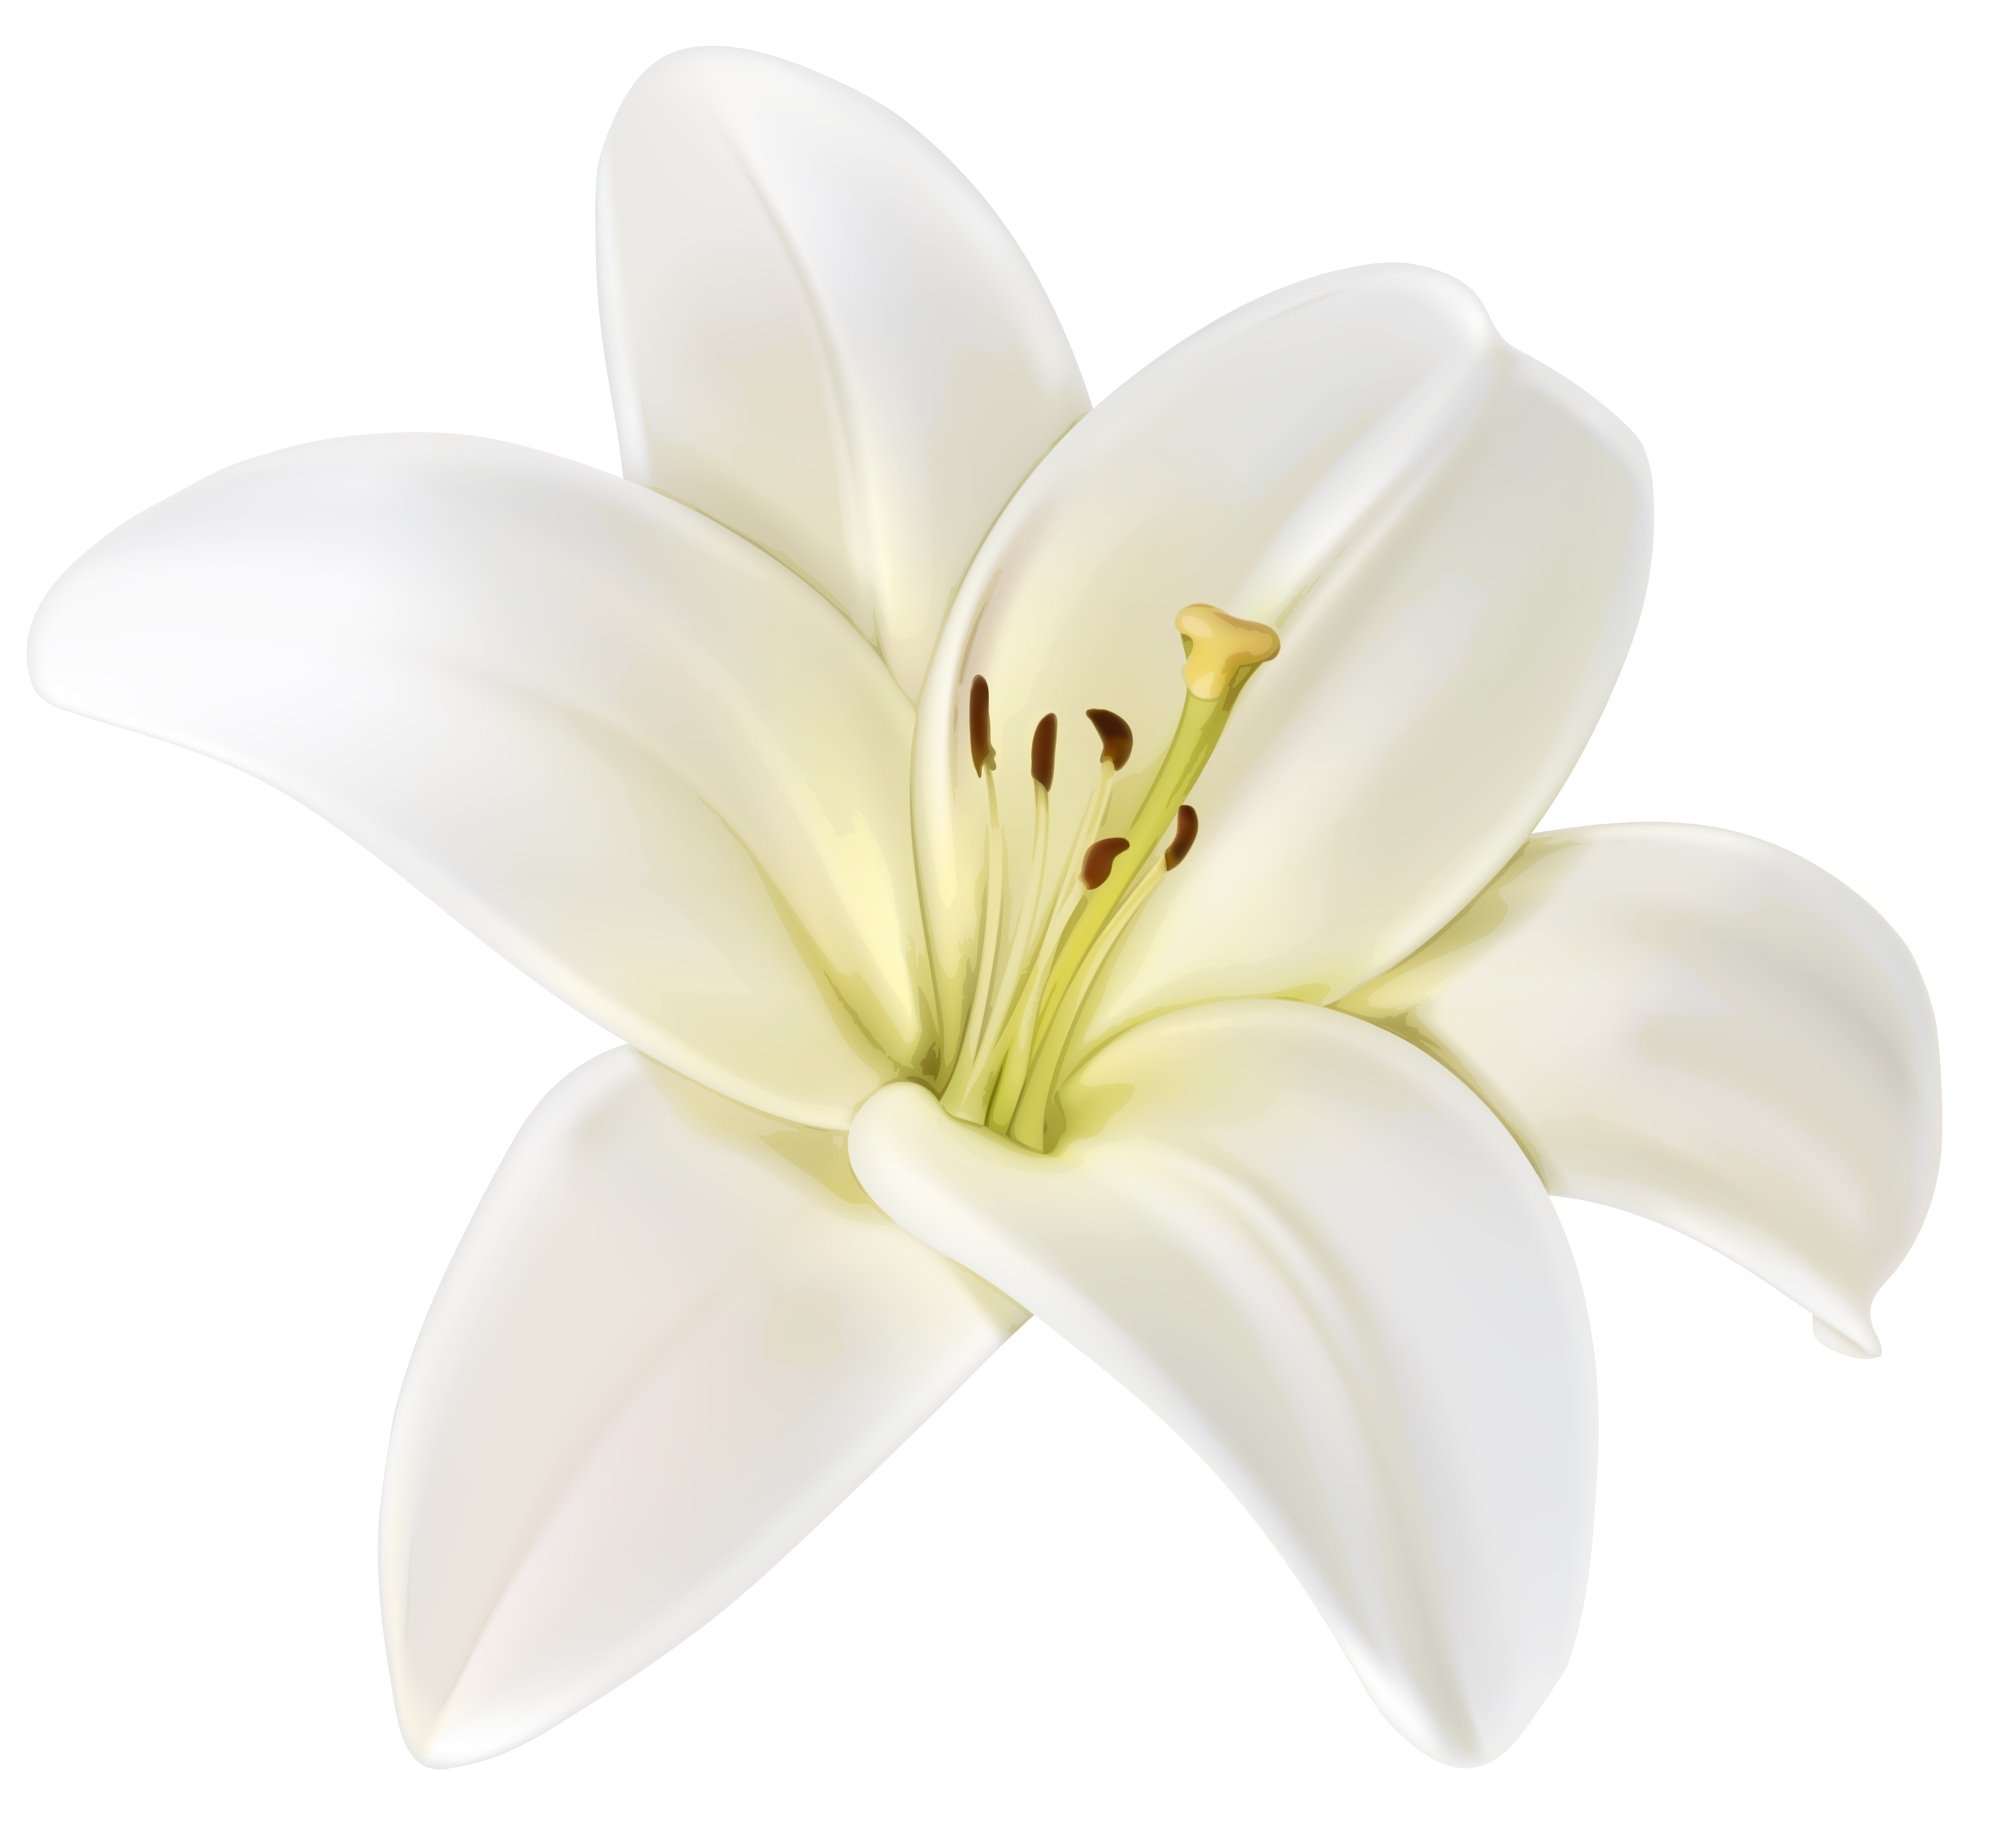 White flower clipart png. Beautiful image gallery yopriceville